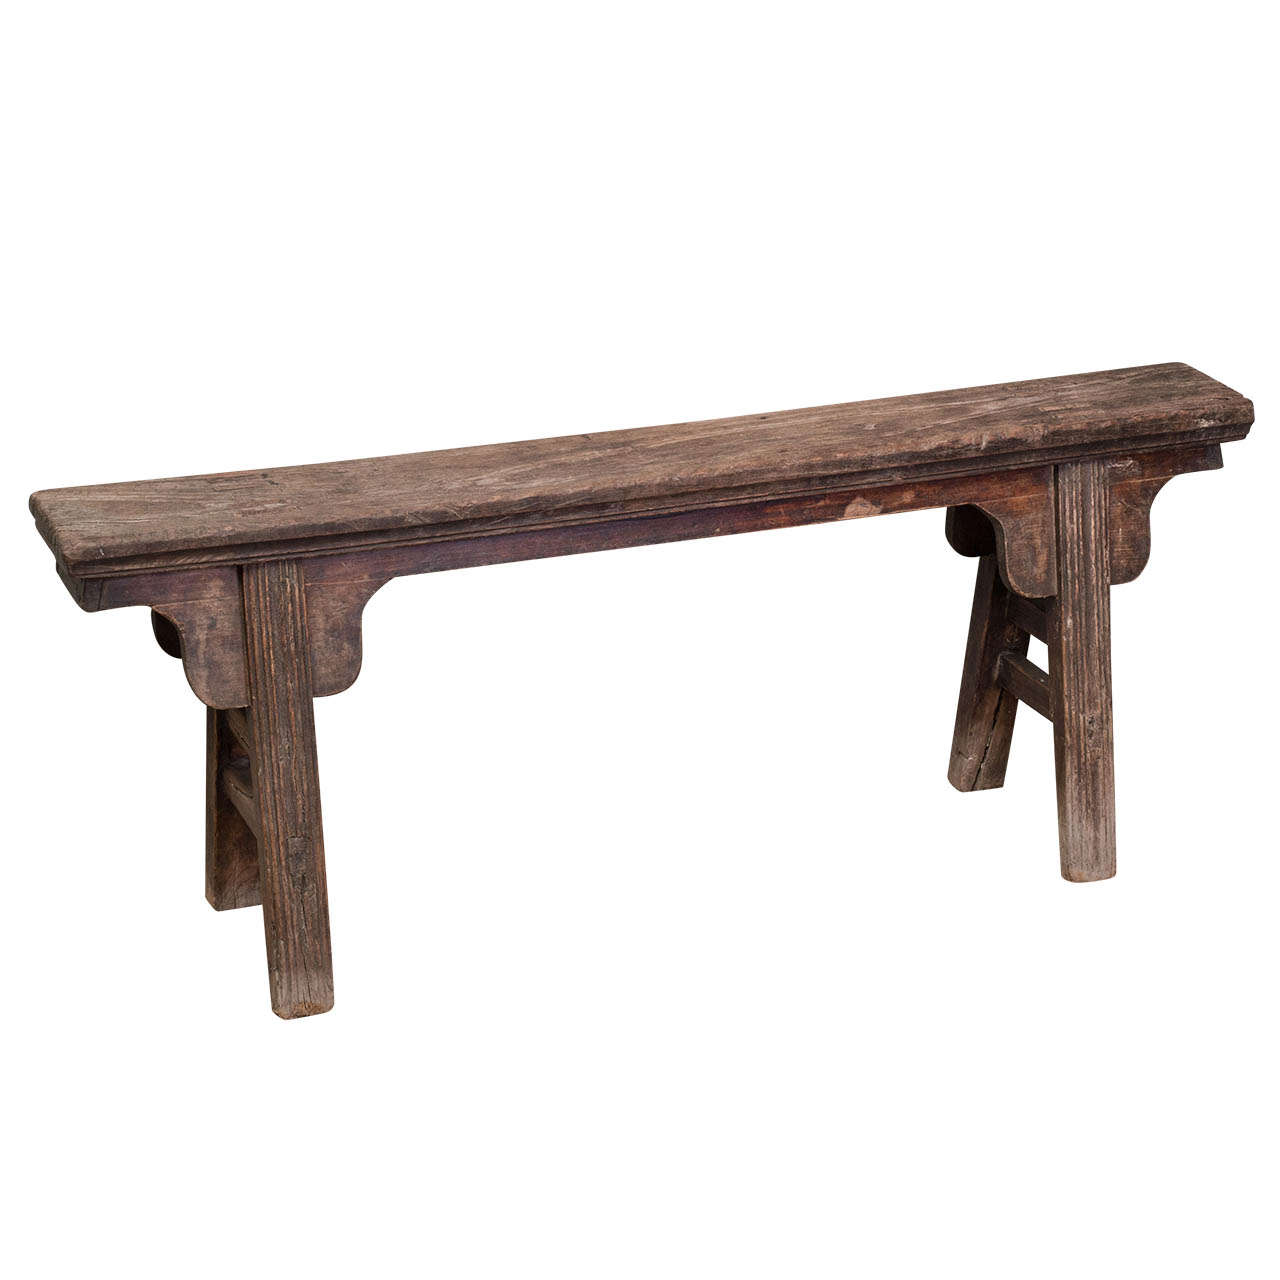 Chinese Rustic Narrow Bench At 1stdibs